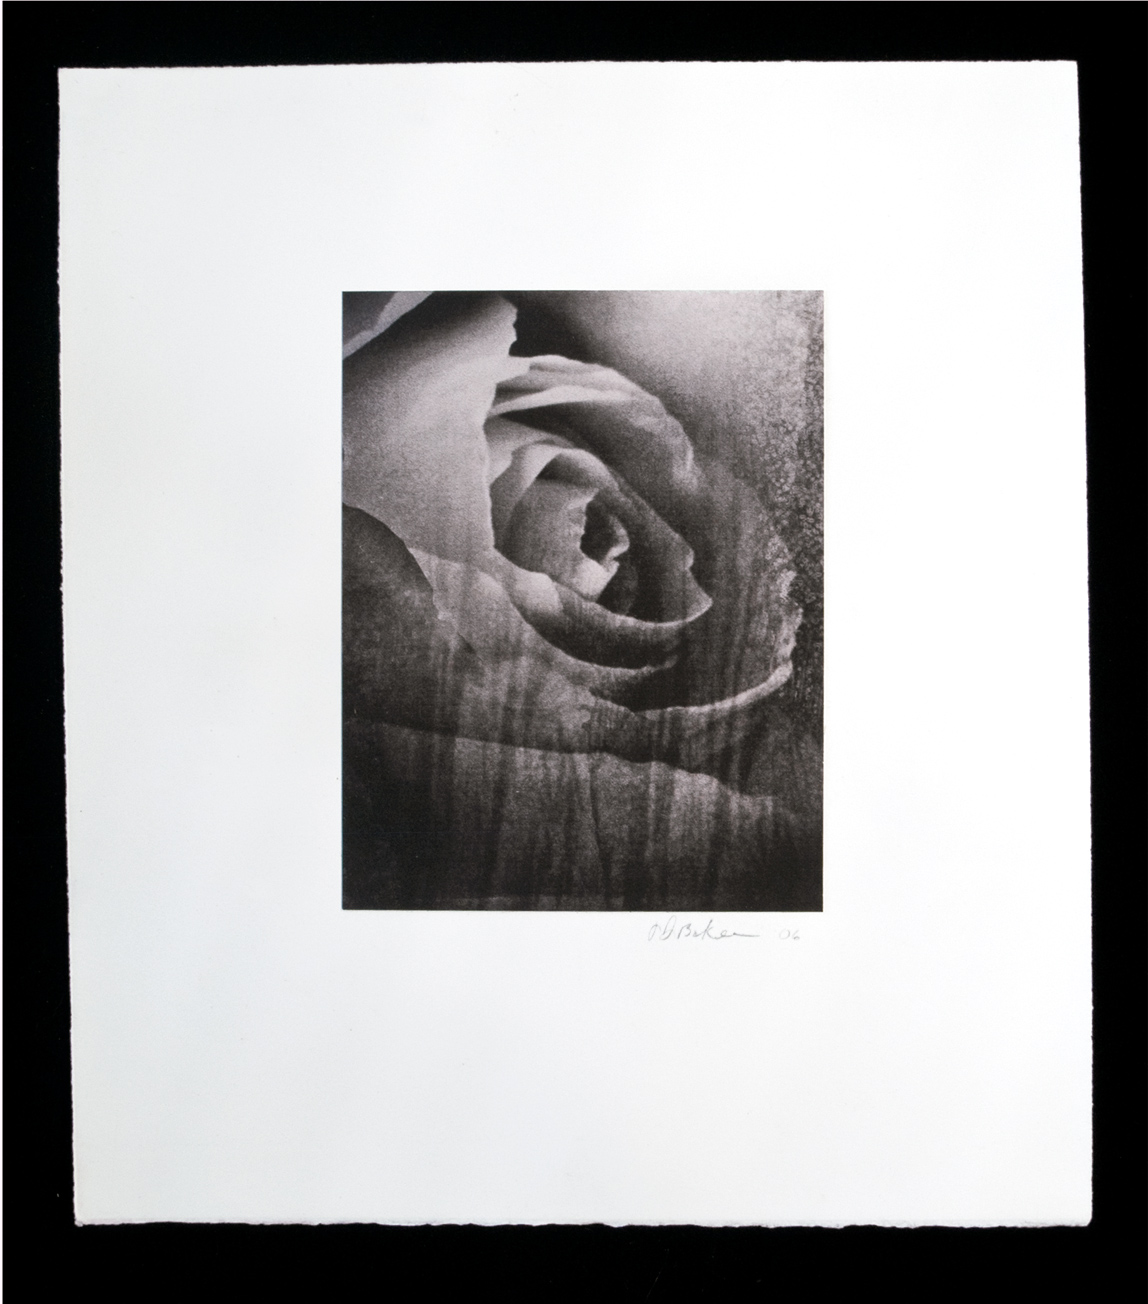 """Drowning Rose""  1998   6 ¾"" X 8 ⅝"" - 14 ½"" X 16 ½""  Chine colle, digital collage, inkjet printed on Somerset Natural  ,"